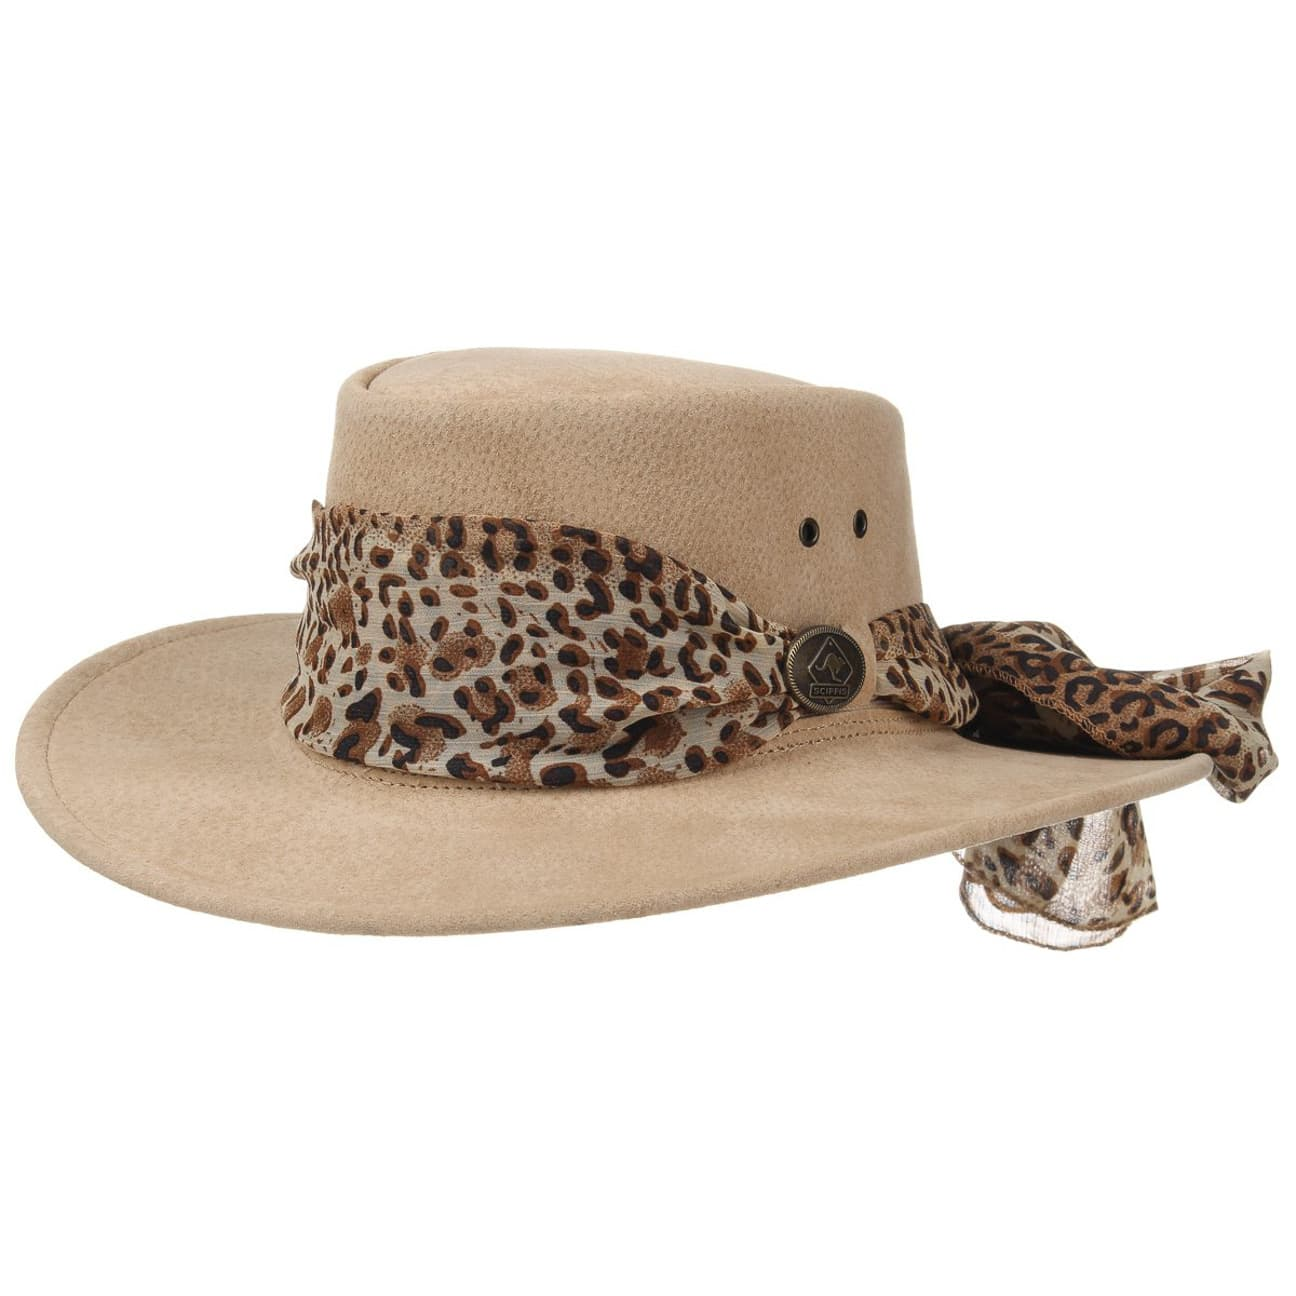 australian hat for by scippis eur 49 95 gt hats